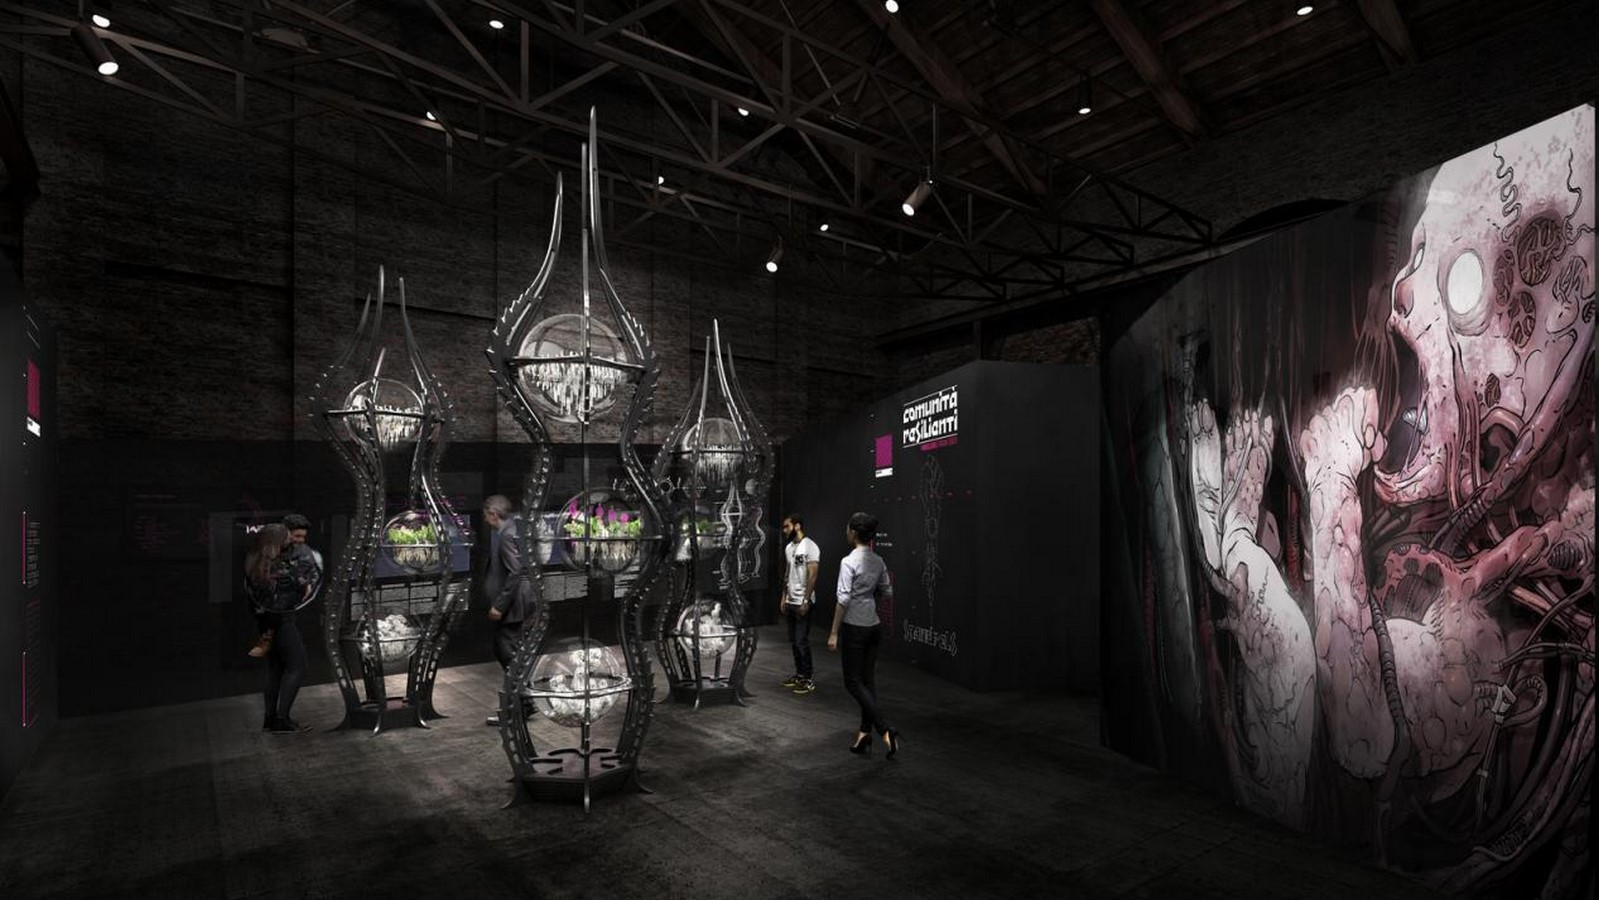 7 Biennale pavilion architecture to look forward- 2021 - Sheet7